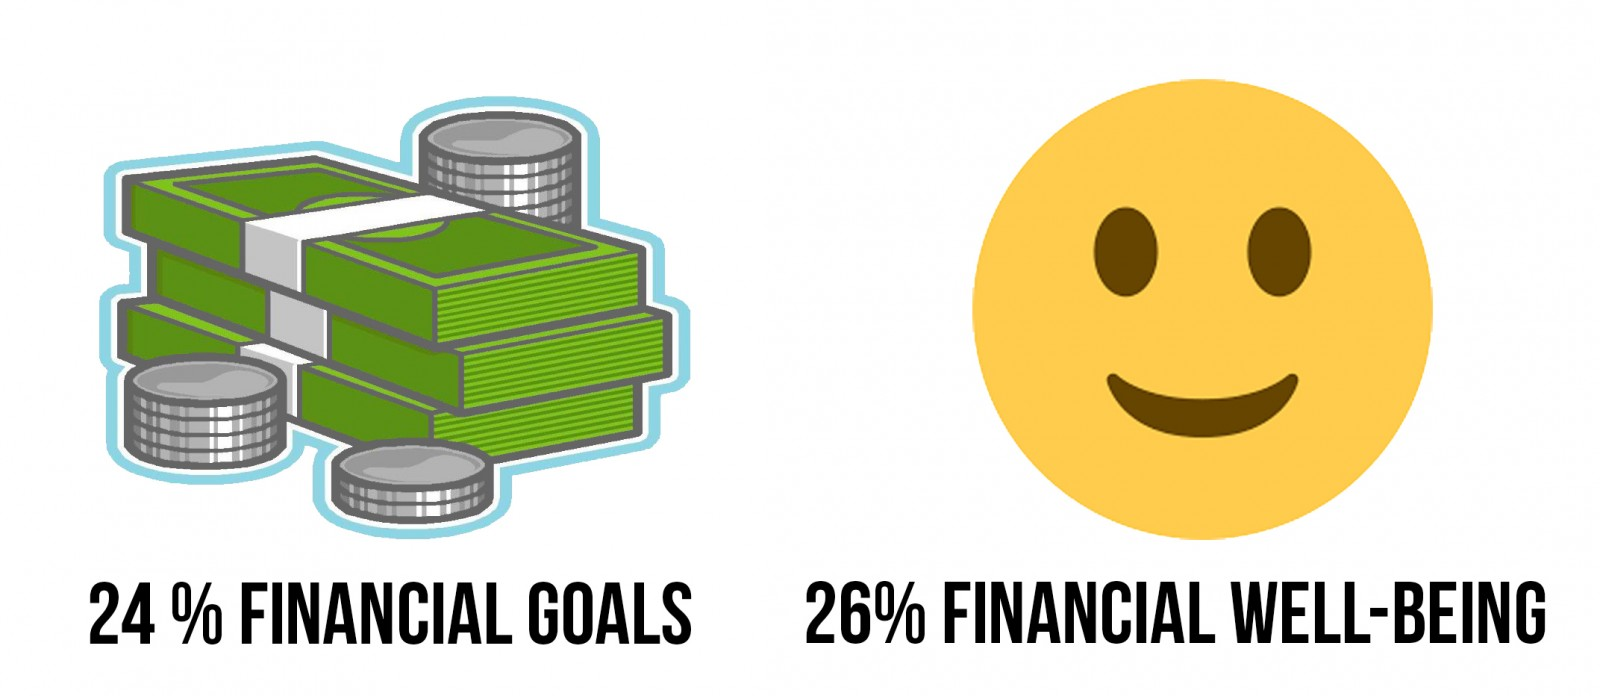 Financial Goals and Well-Being